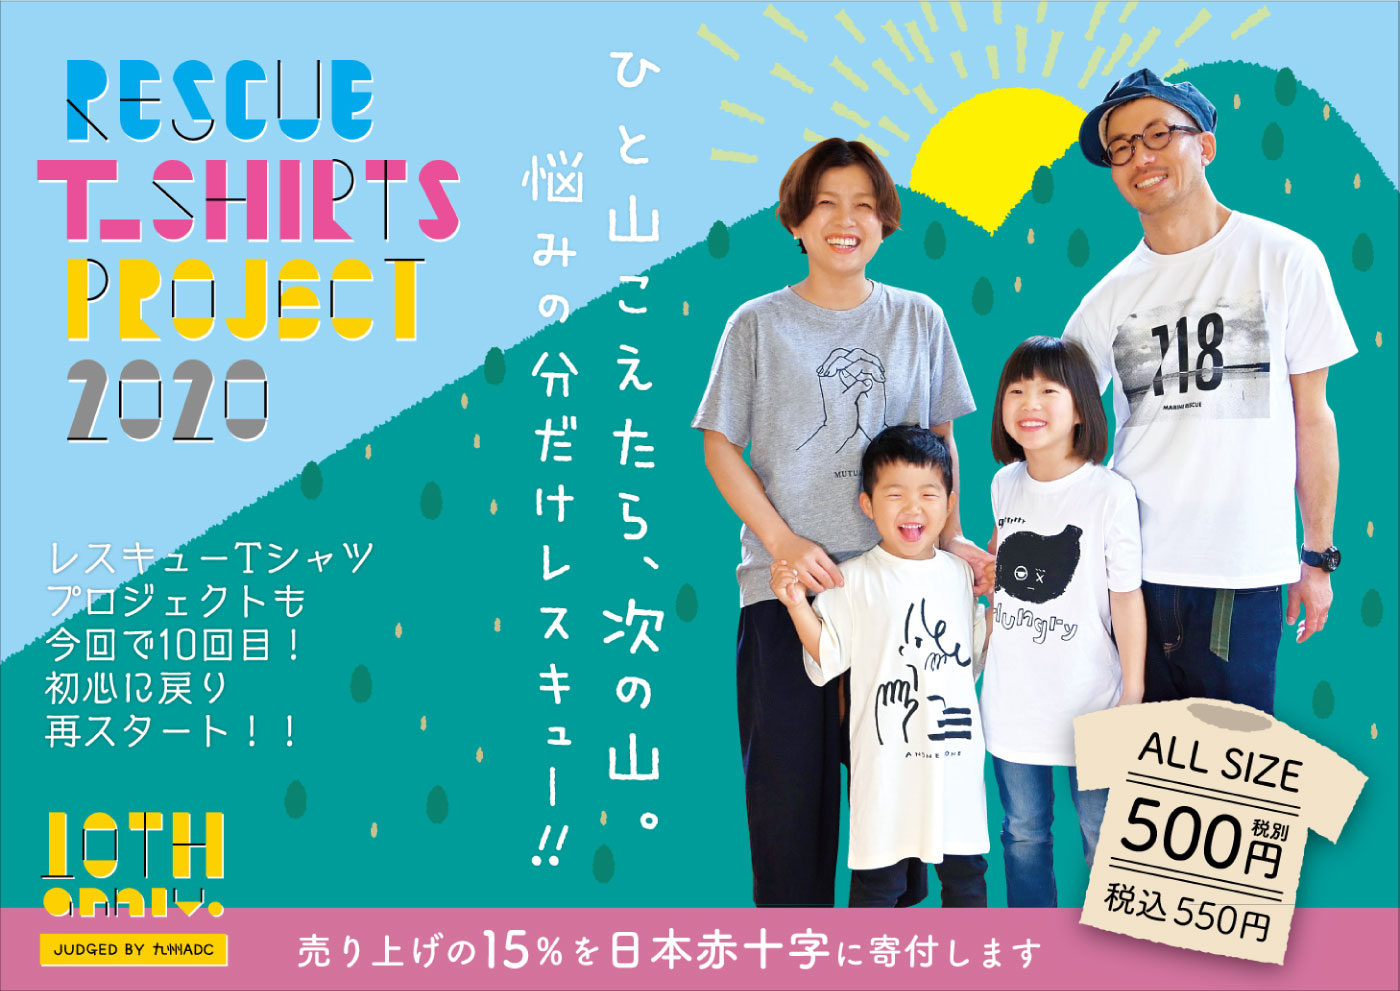 RESCUE T-SHIRTS PROJECT 2020